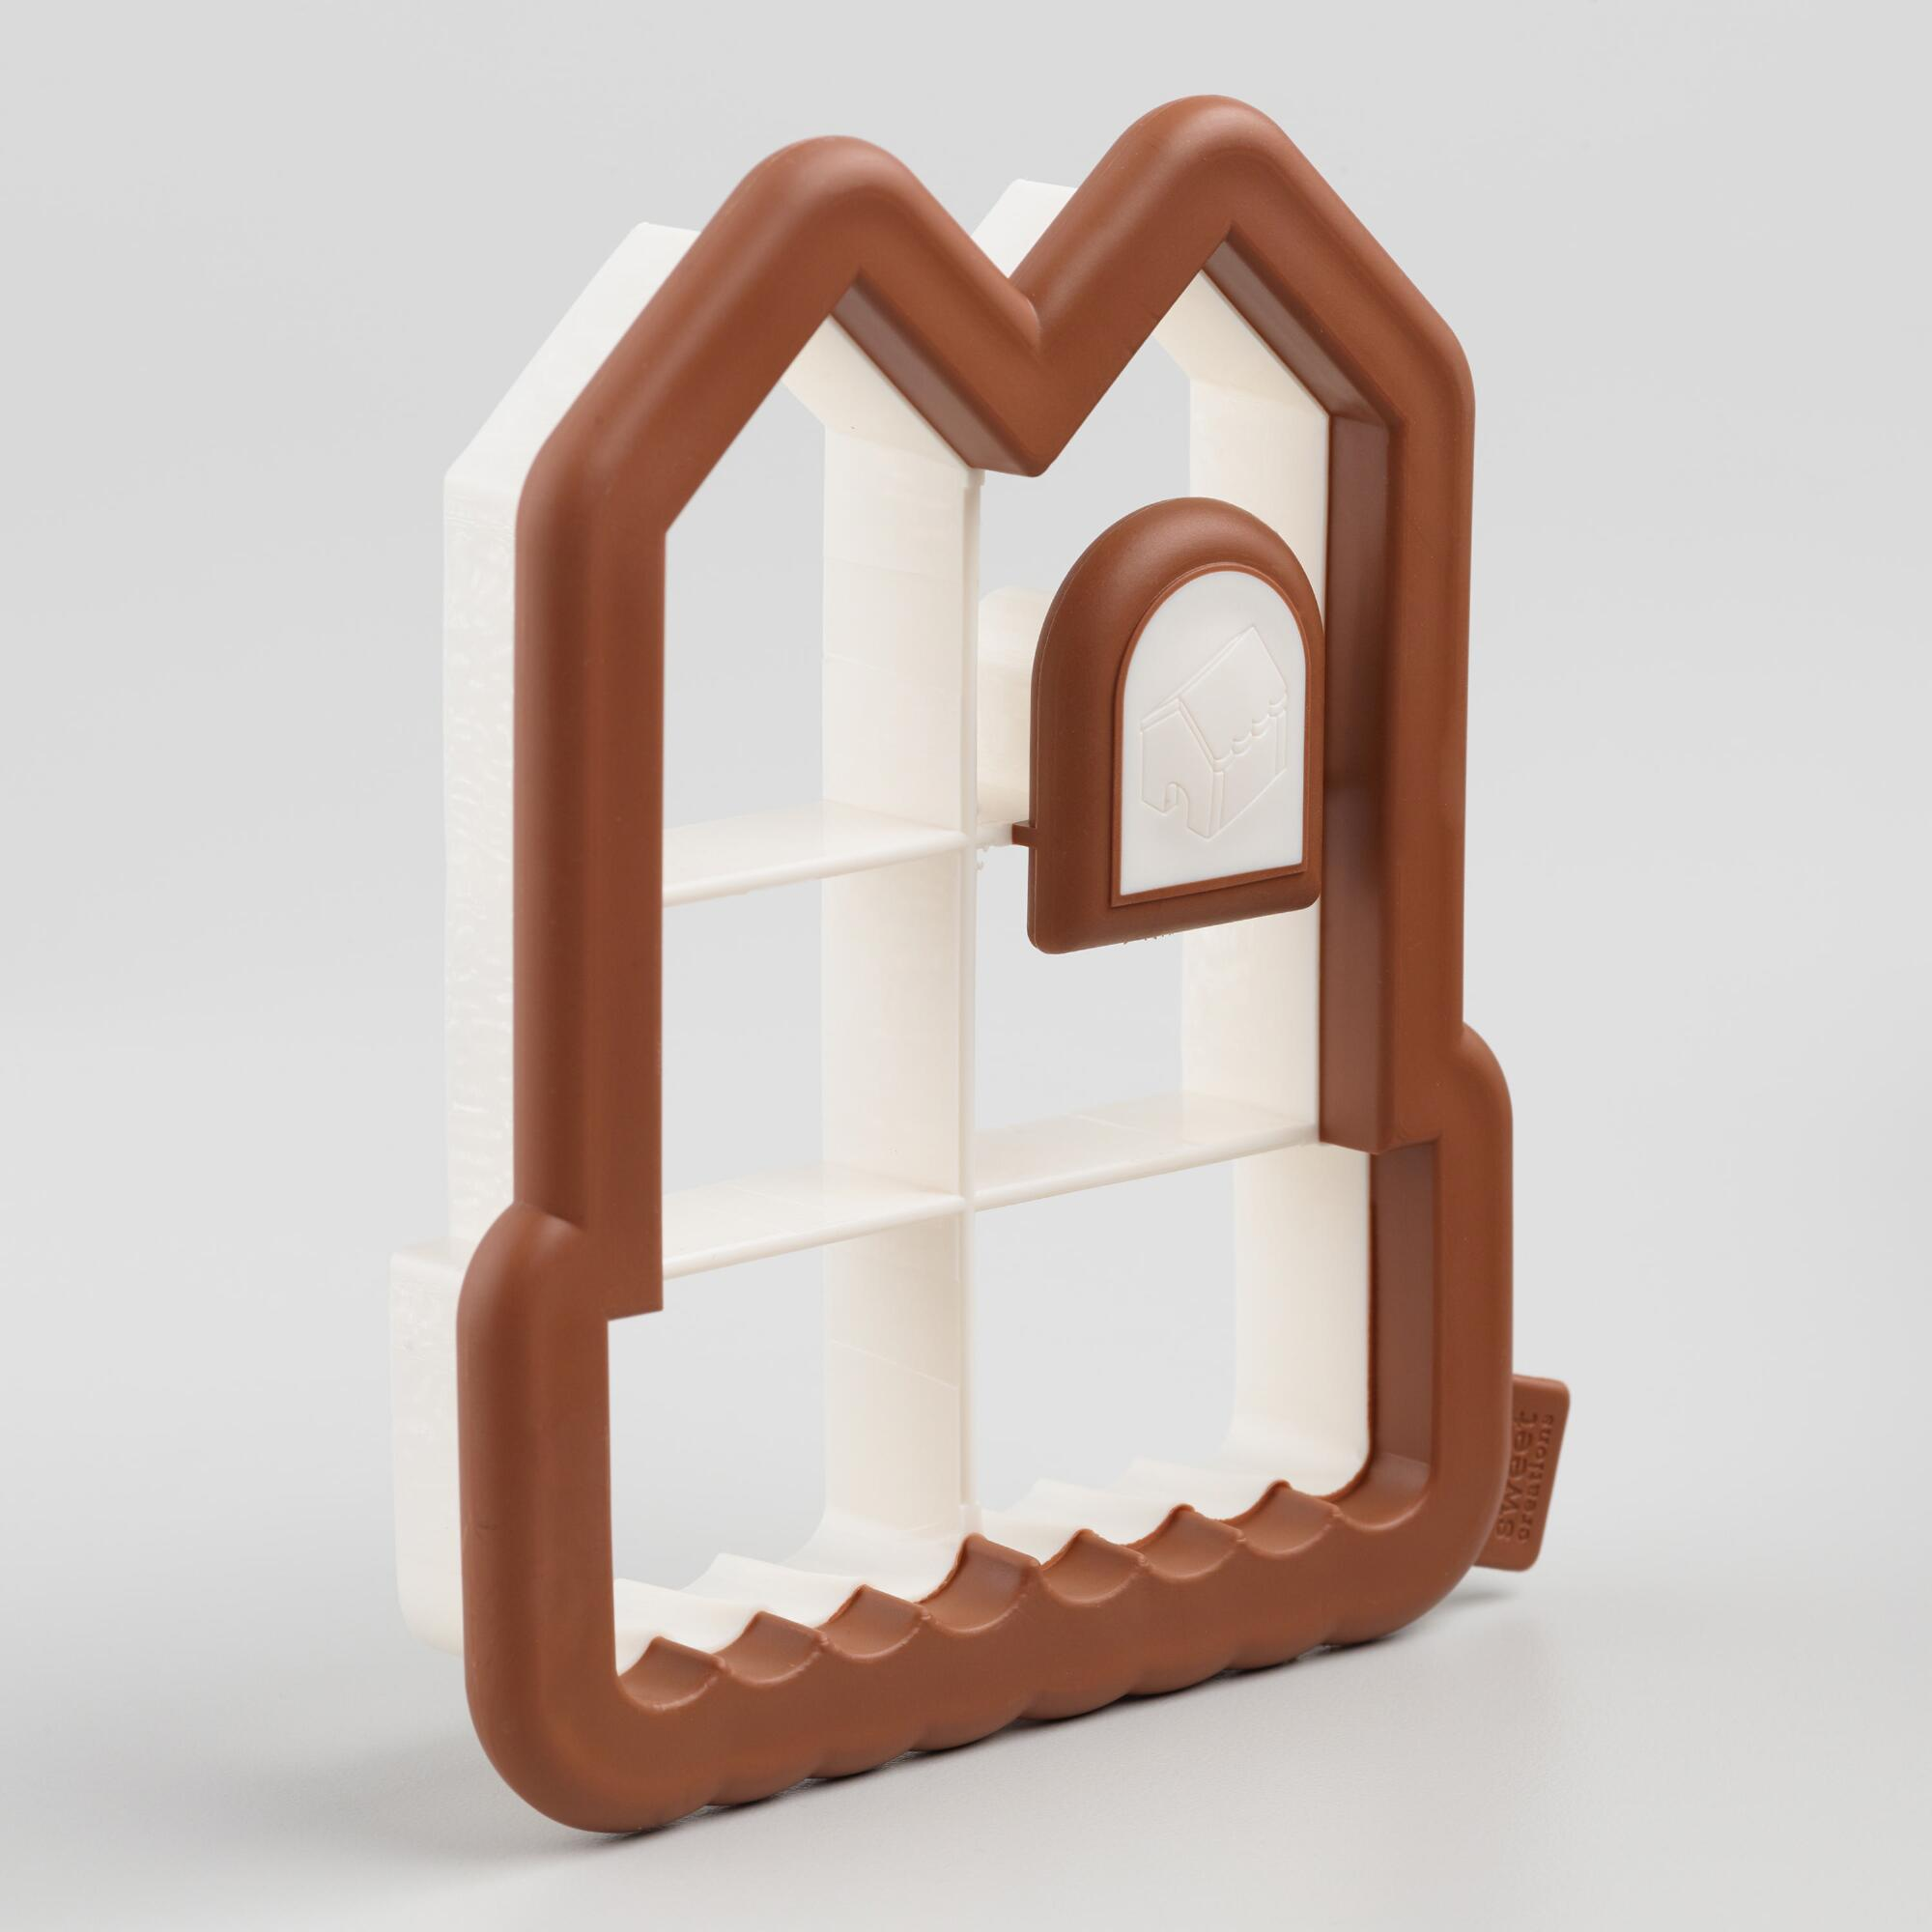 Gingerbread House Side-of-the-Cup Cookie Cutter by World Market